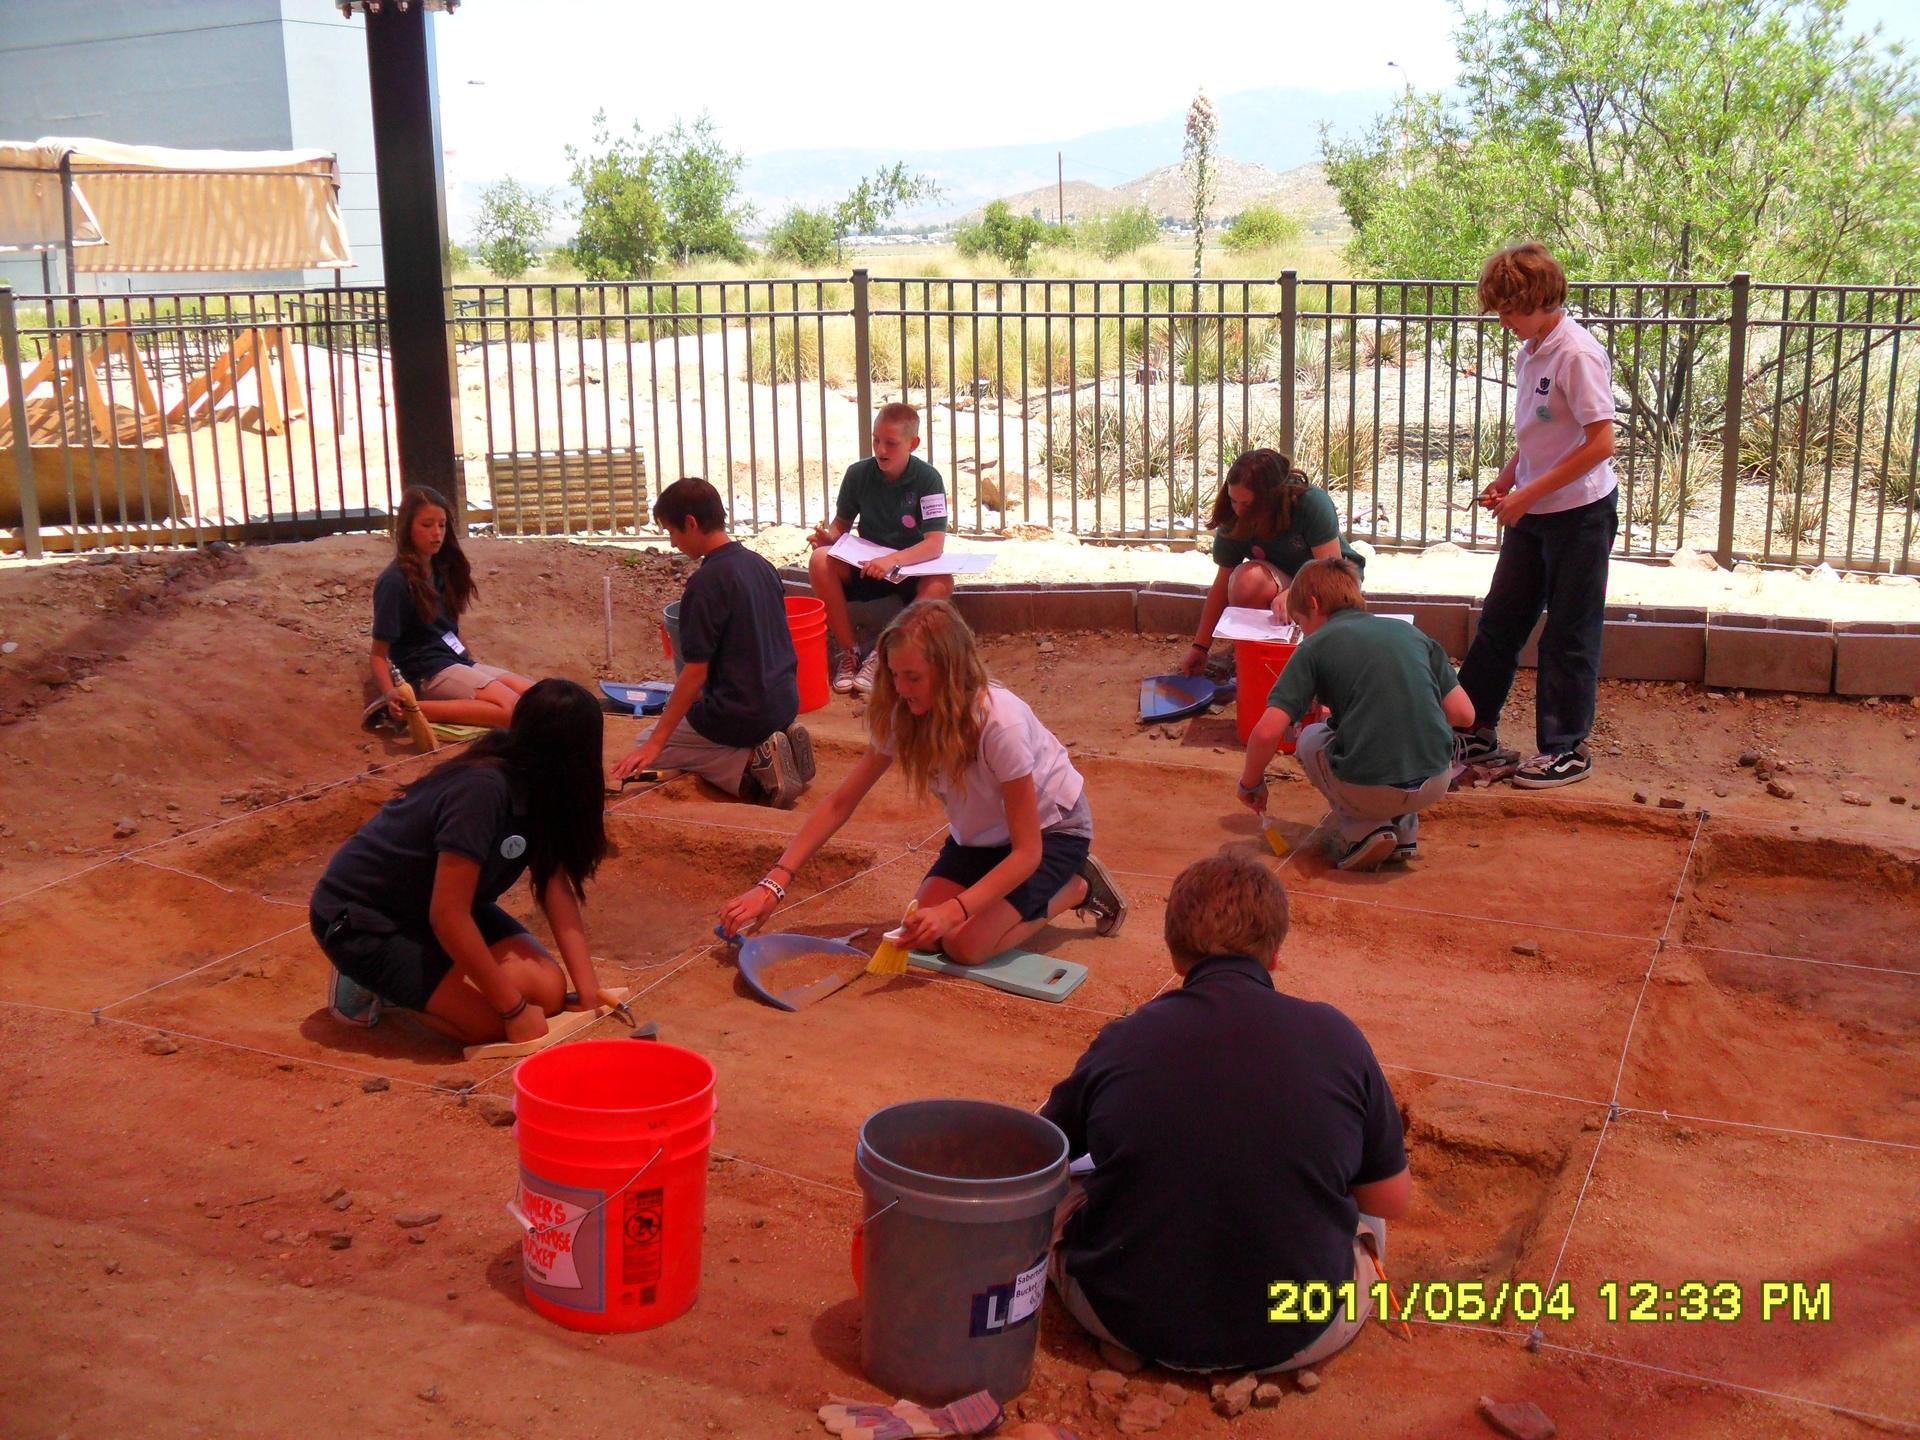 Students working in archaeology simulated dig site